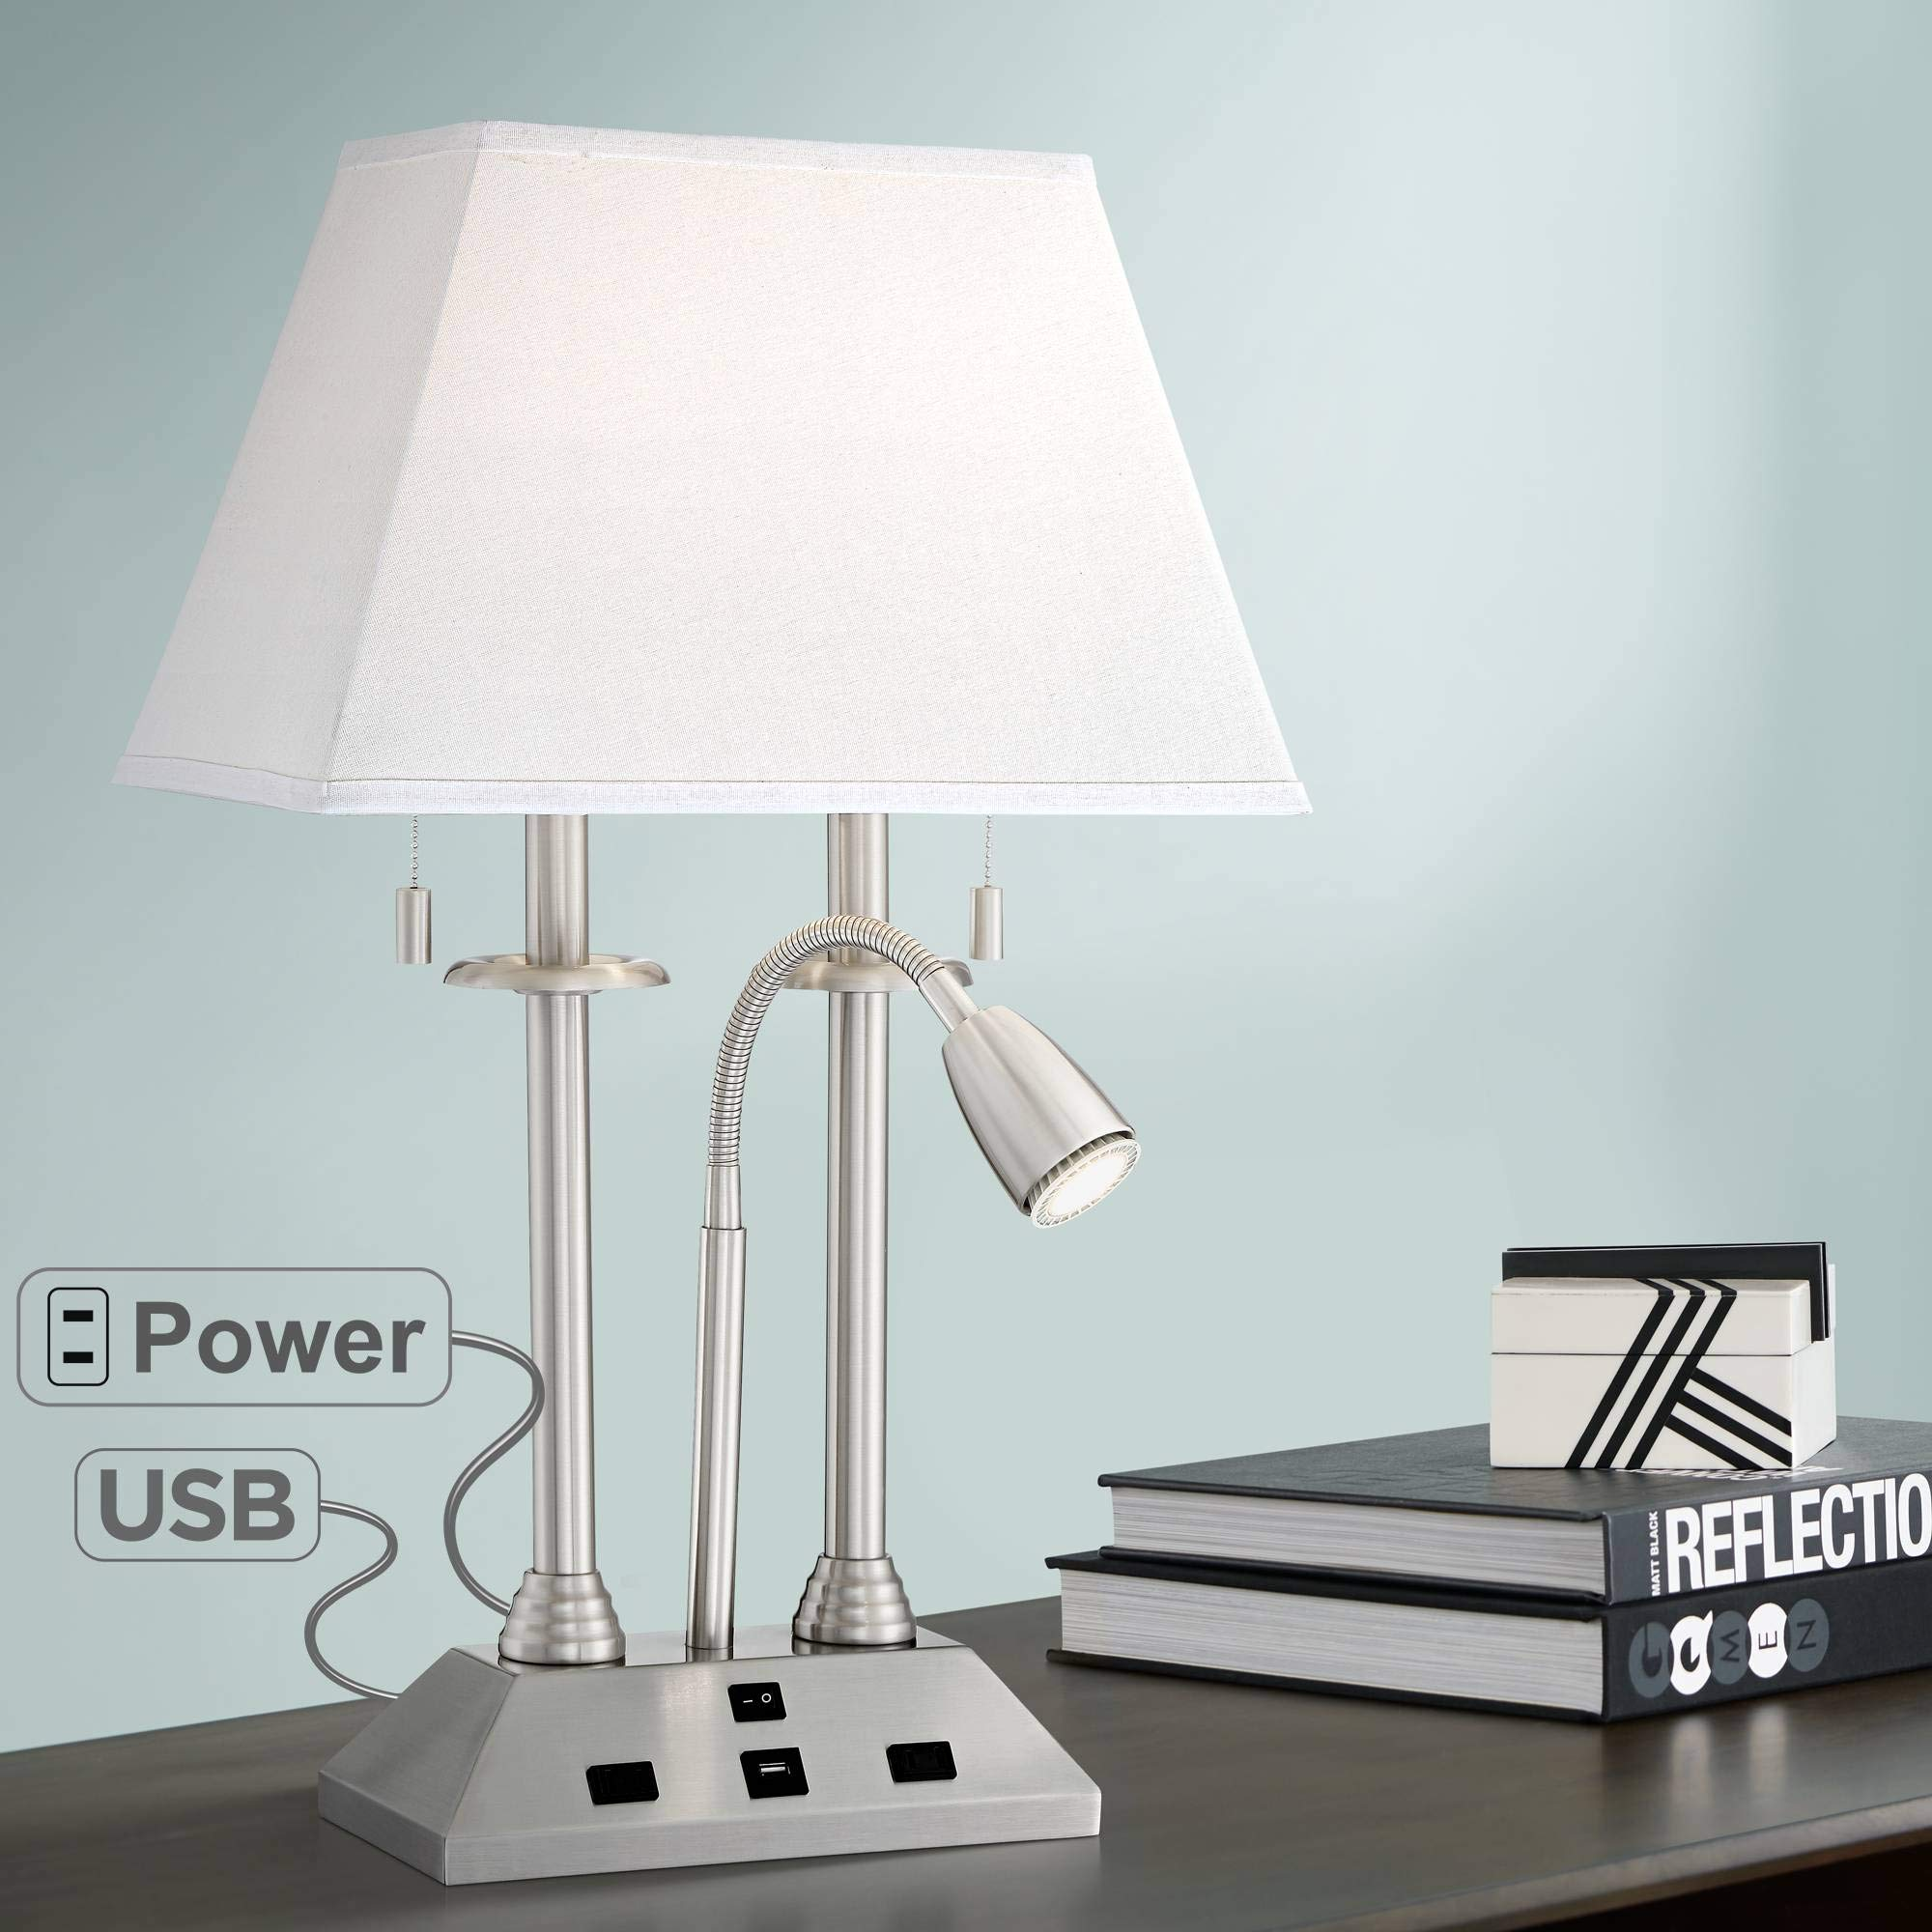 Dexter Modern Desk Lamp with USB and AC Power Outlet in Base Brushed Nickel LED Reading Light for Bedroom Bedside Office - Possini Euro Design